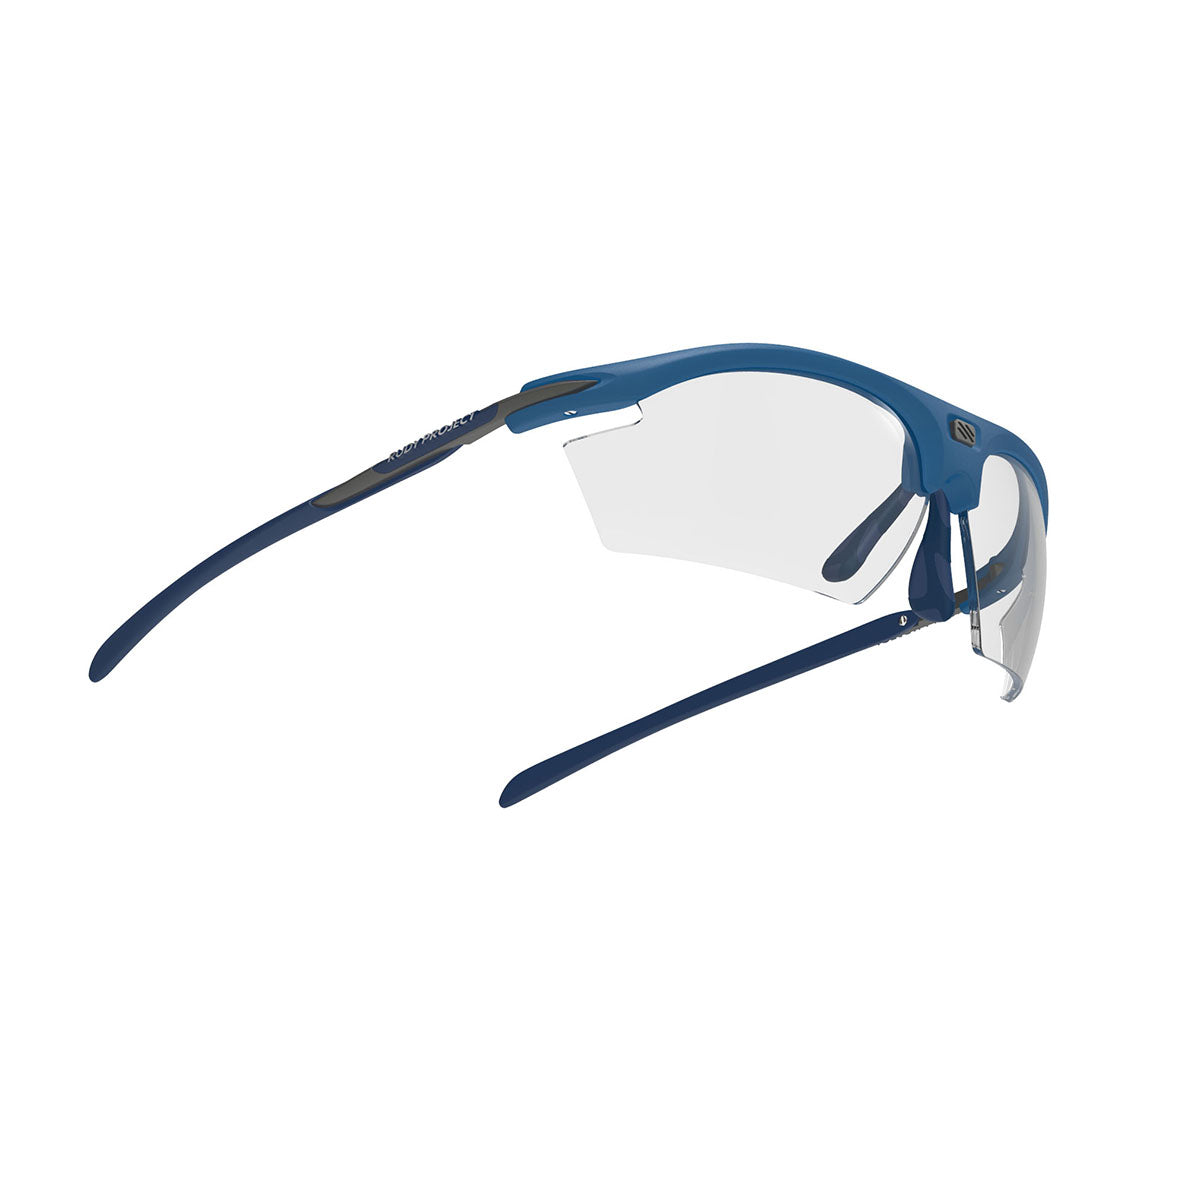 Rudy Project - Rydon - frame color: Pacific Blue Matte - lens color: ImpactX-2 Photochromic Clear to Black - photo angle: Bottom Front Angle Variant Hover Image